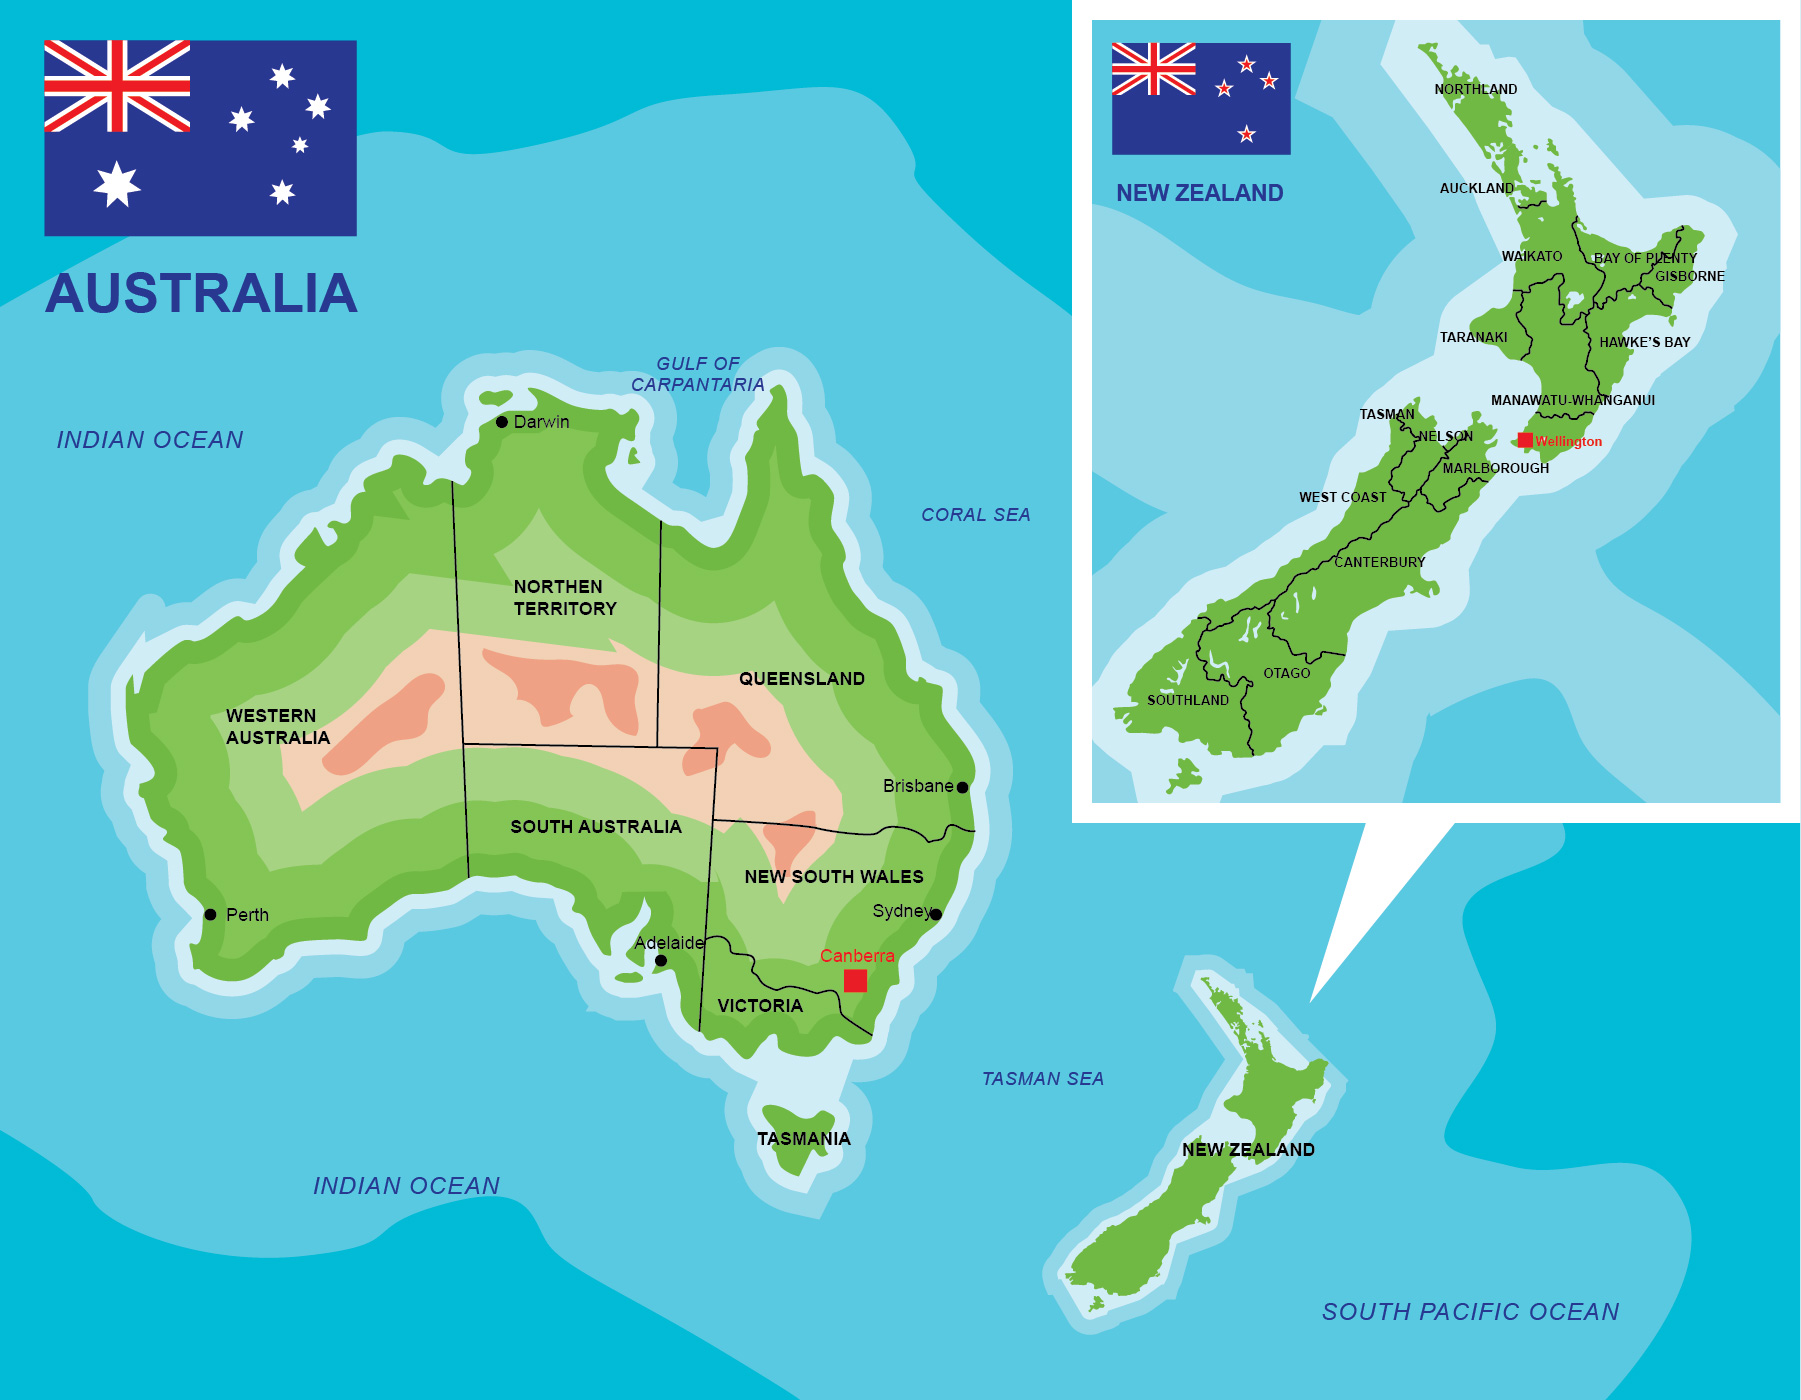 Australia To New Zealand Map.Australia New Zealand Map Free Vector Art 20173 Free Downloads